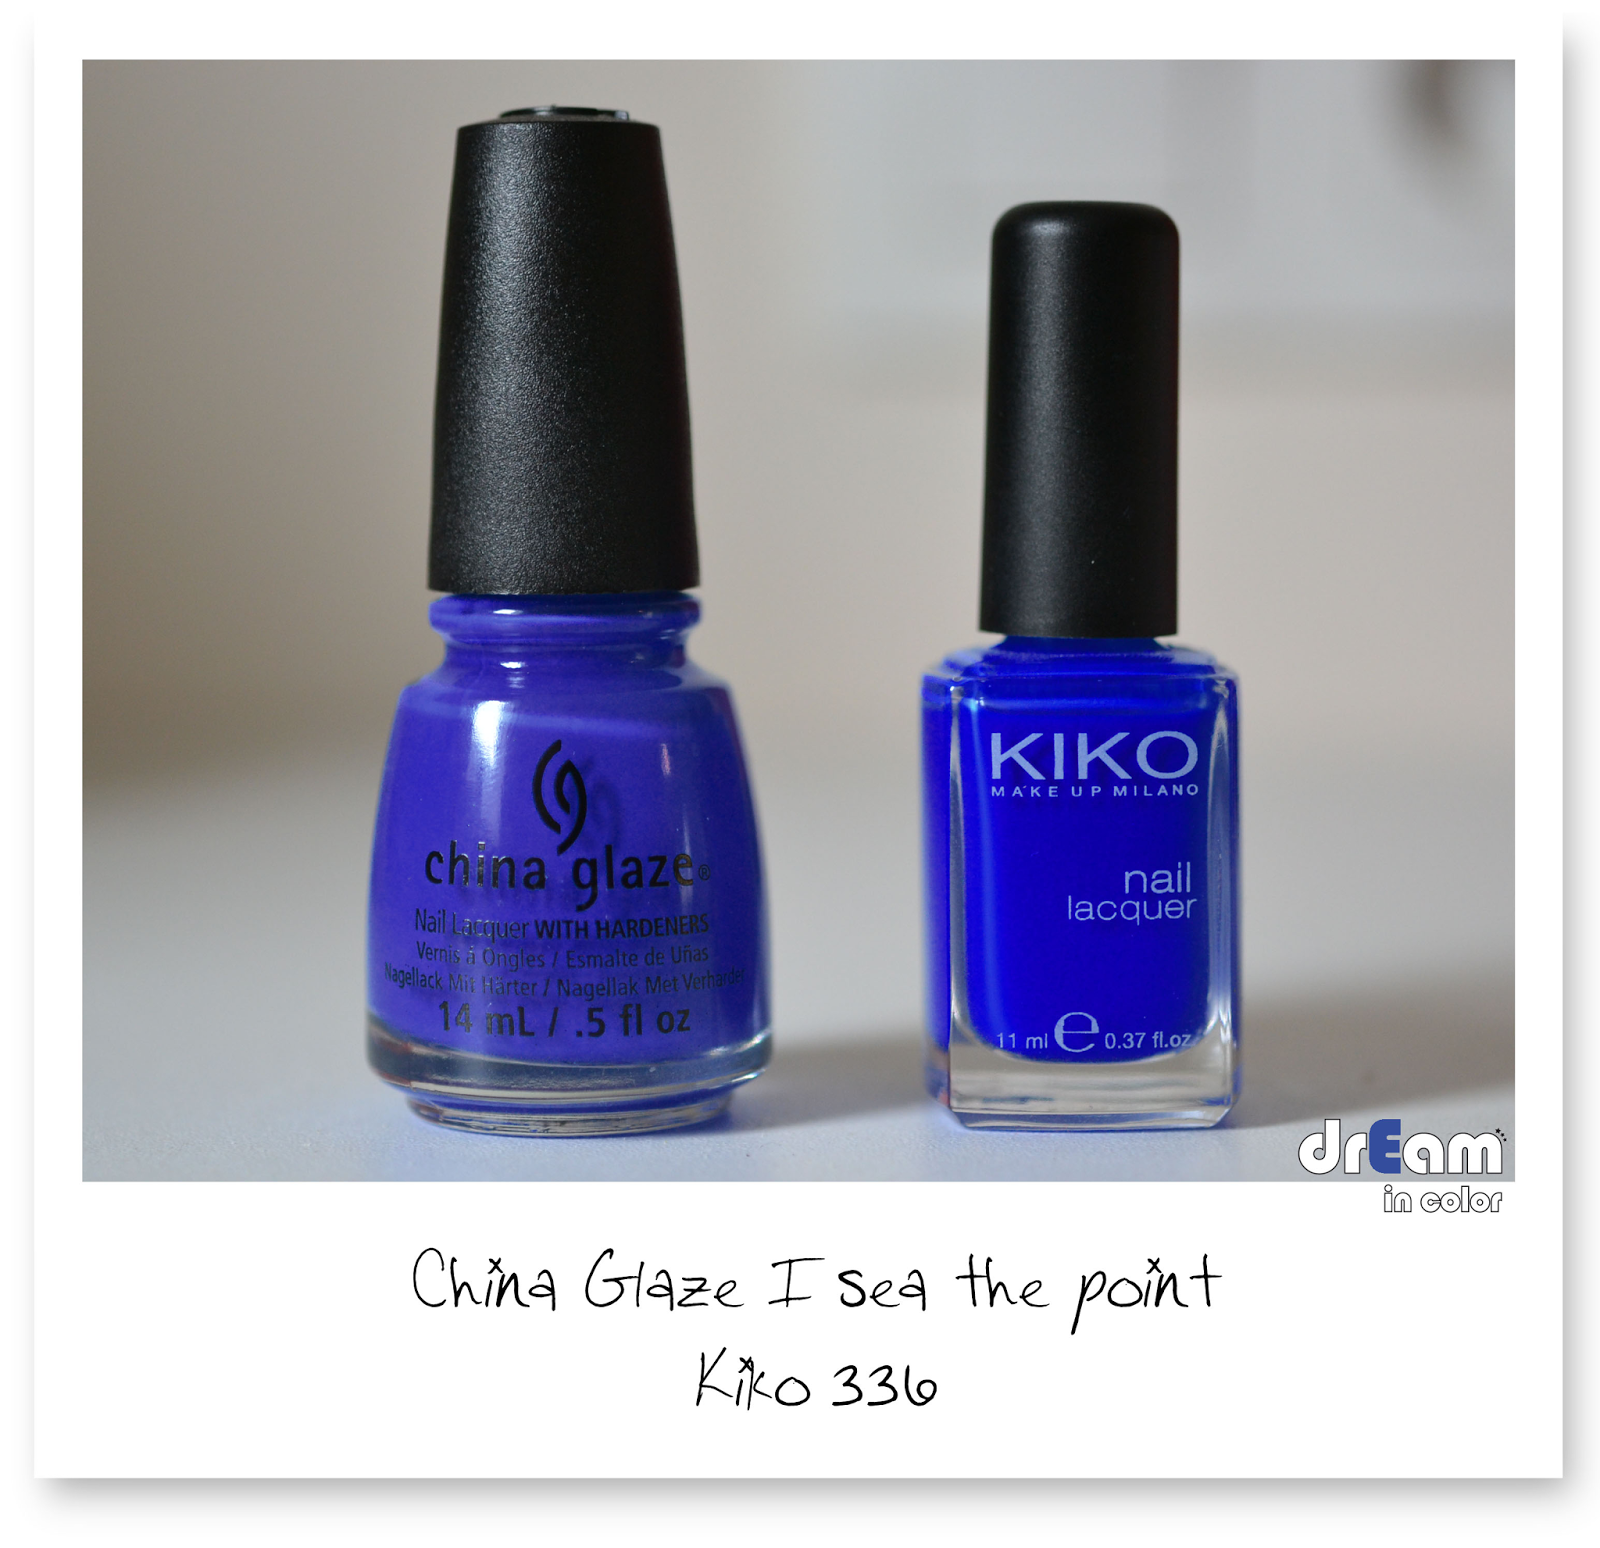 China Glaze I sea the point comparaison